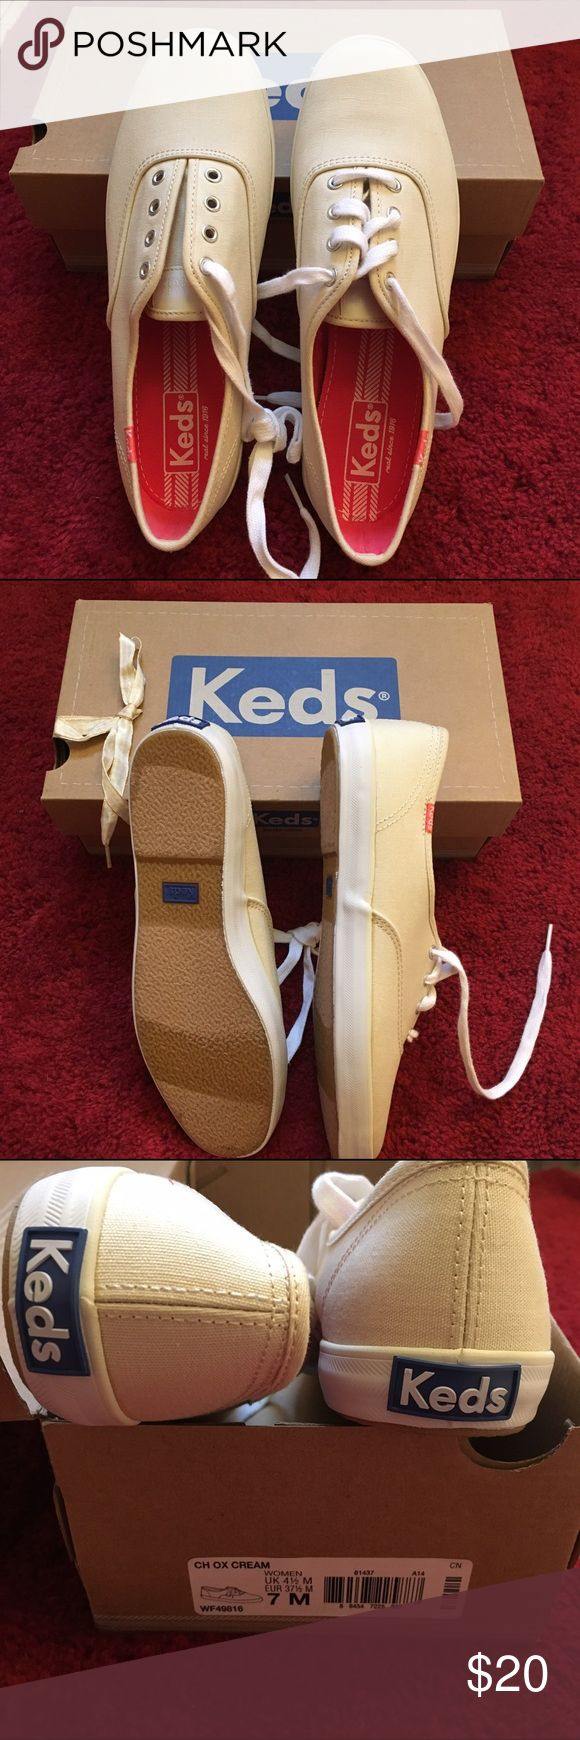 Keds sneaker in cream color Brand new never worn Keds in cream color. Still in its original package with extra shoelaces. US 7M/ UK 4.5 M/ EUR 37.5 M Keds Shoes Sneakers